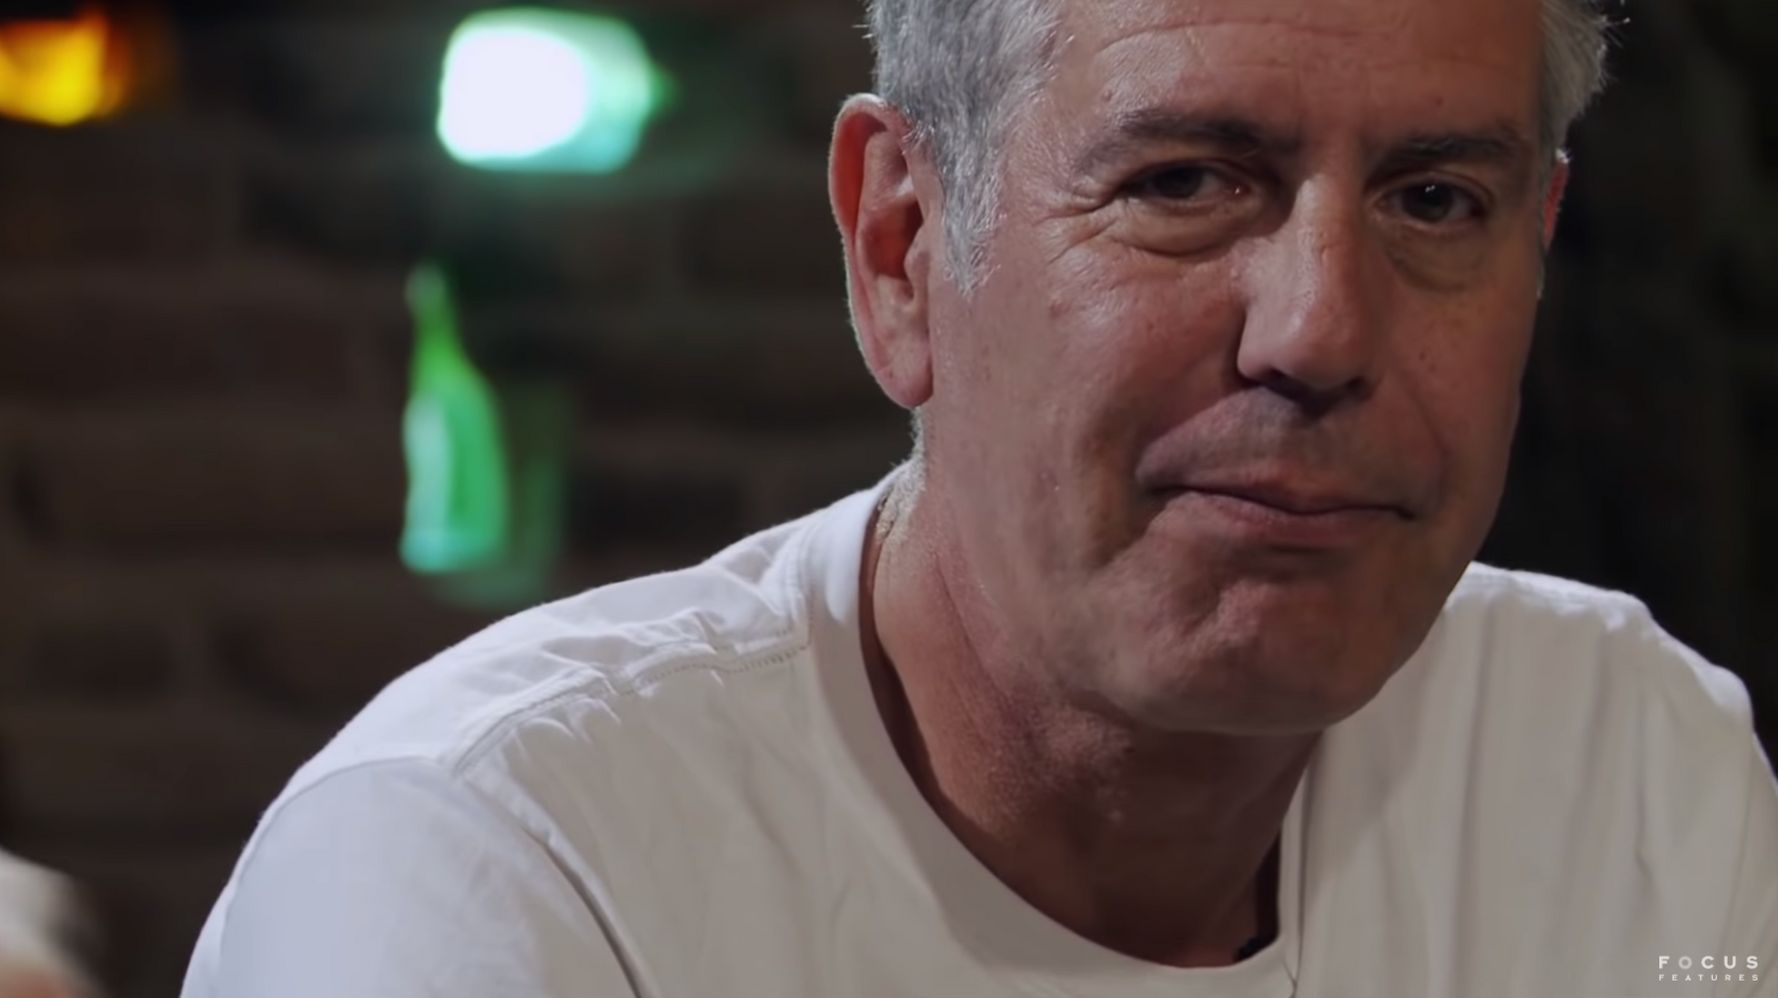 The Anthony Bourdain Documentary Trailer Just Dropped And 'There's No Happy Ending'